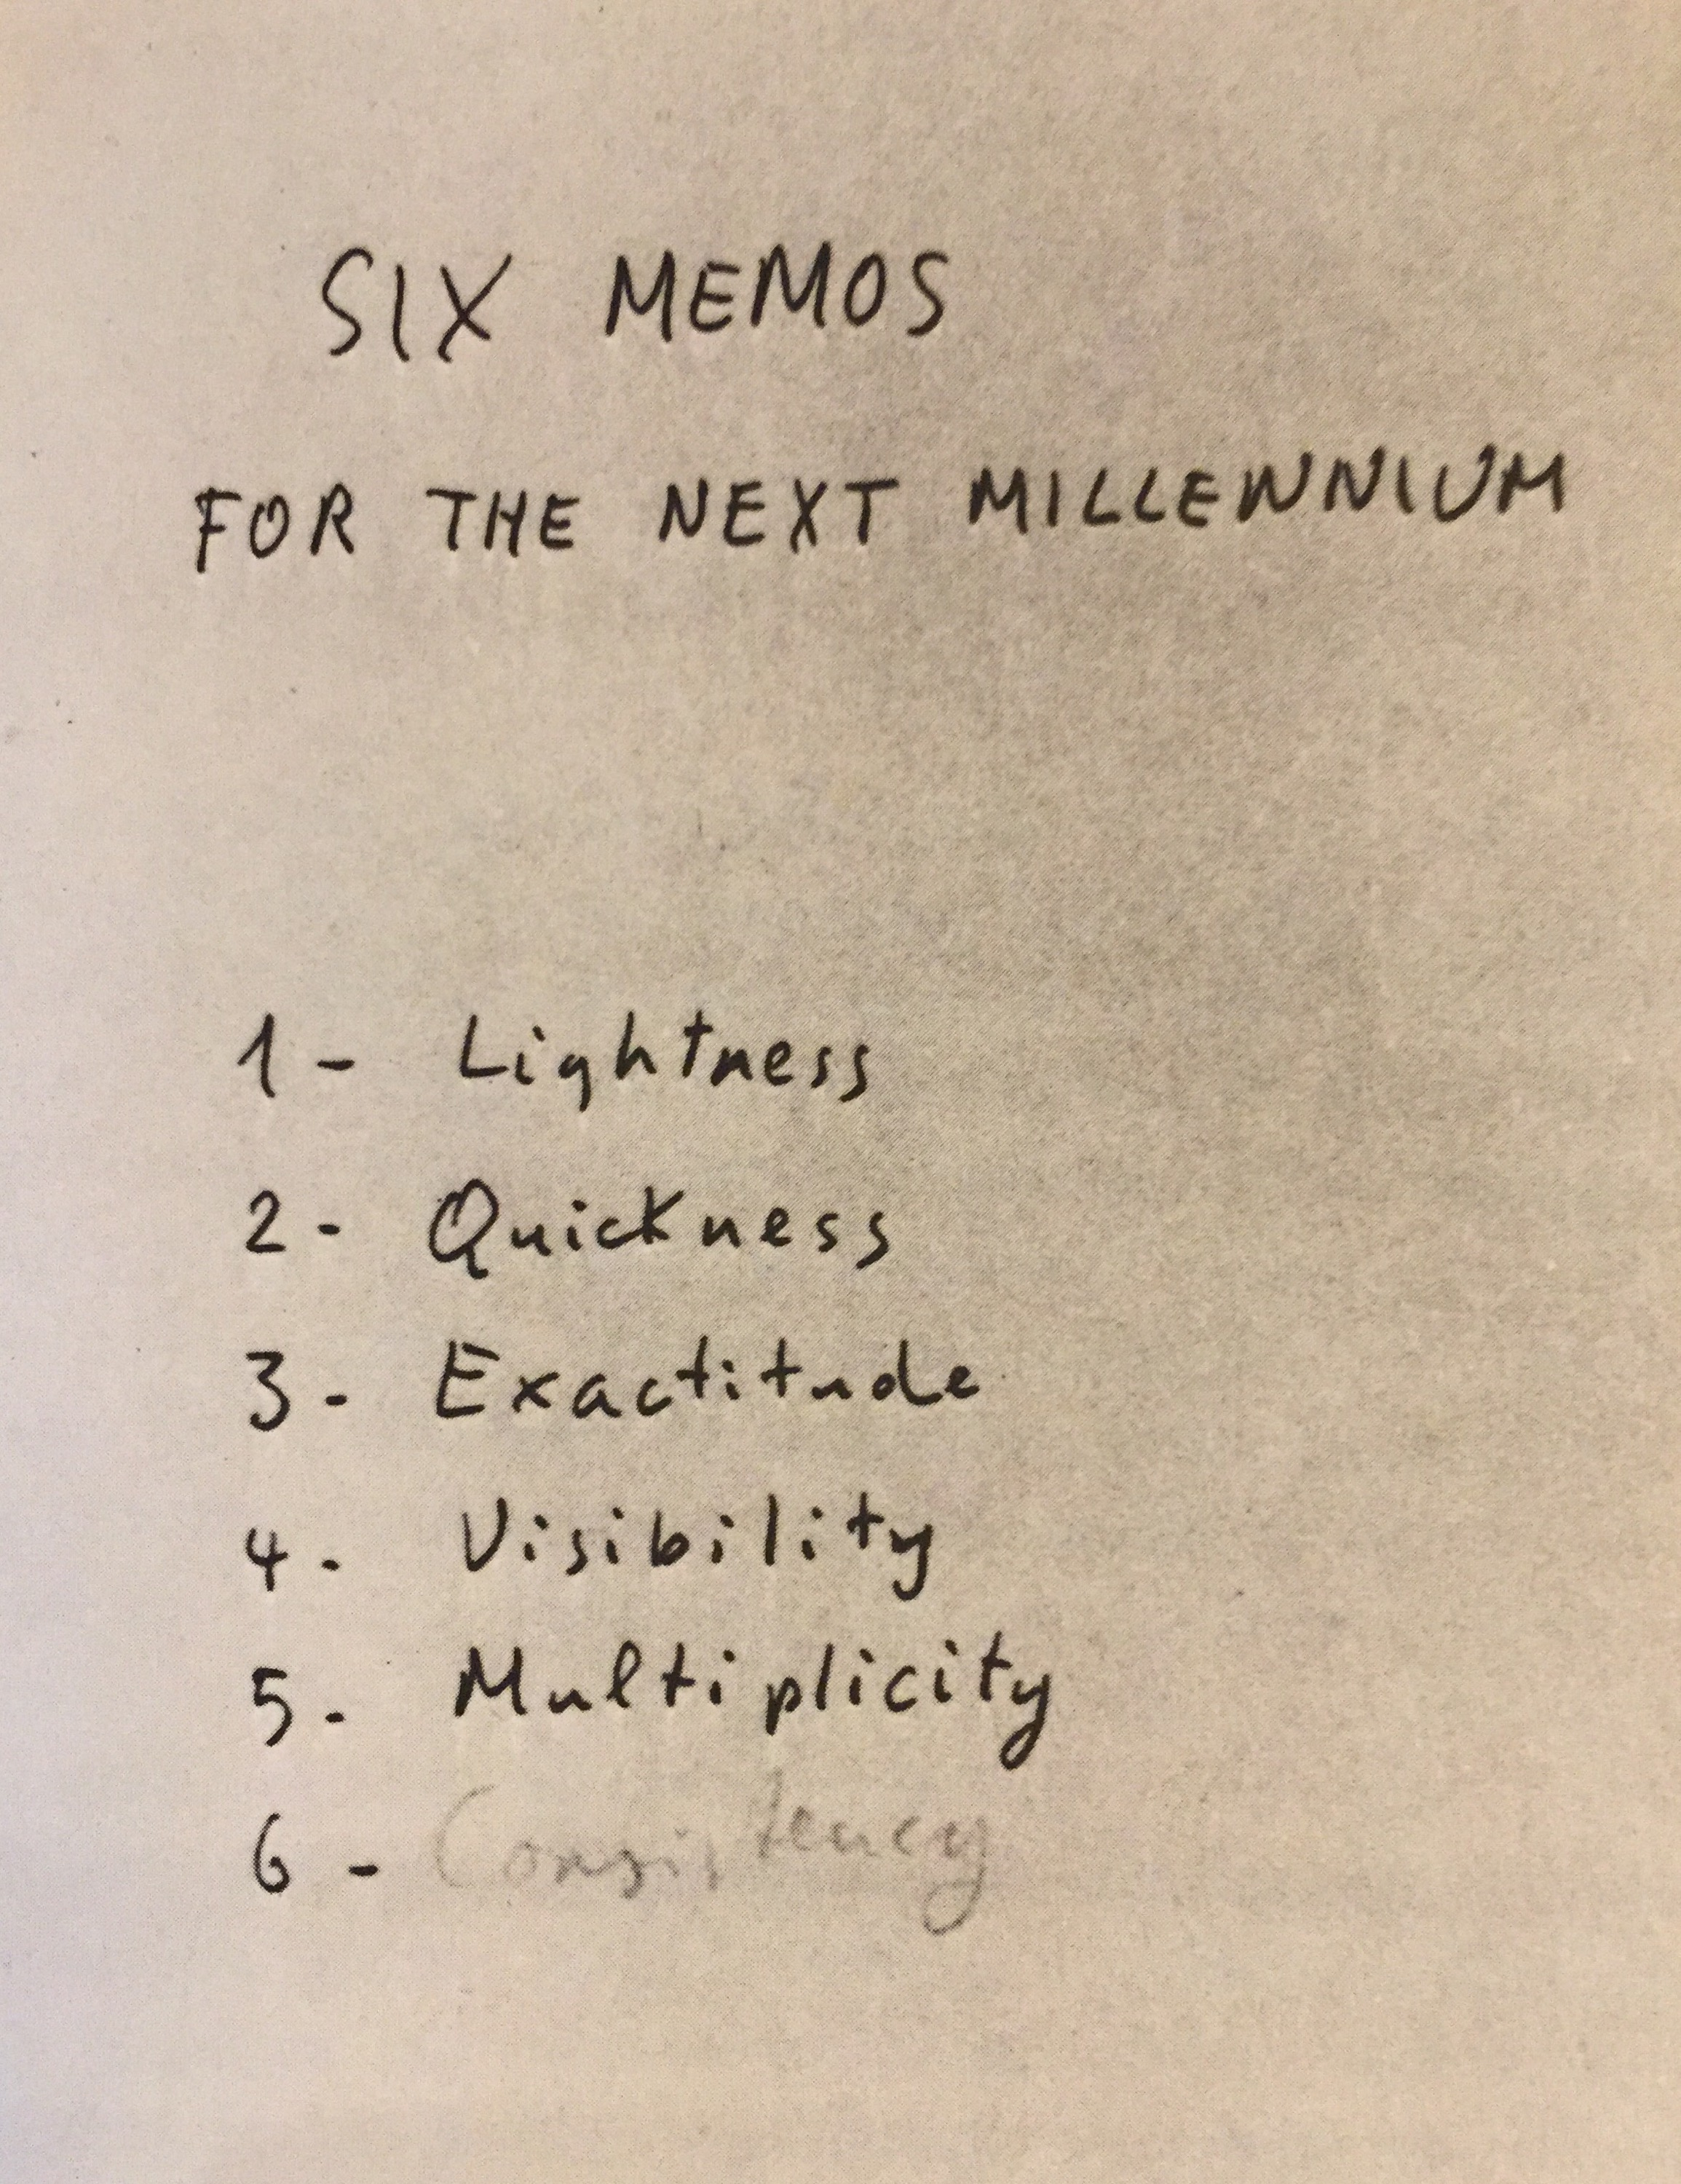 Six Memos for the Next Millennium - These memos represent the lectures that Calvino was to have given at Harvard in 1983. He had written five of them at the time of his death, so that in English the very title represents a wish and a regret--the Italian book is called Lezioni americane, Italian Lessons (or lectures). Each lecture evokes a virtue that Calvino would like humanity to take with it, if possible, into the next millennium. The virtues are: lightness, quickness, exactitude, visibility, multiplicity